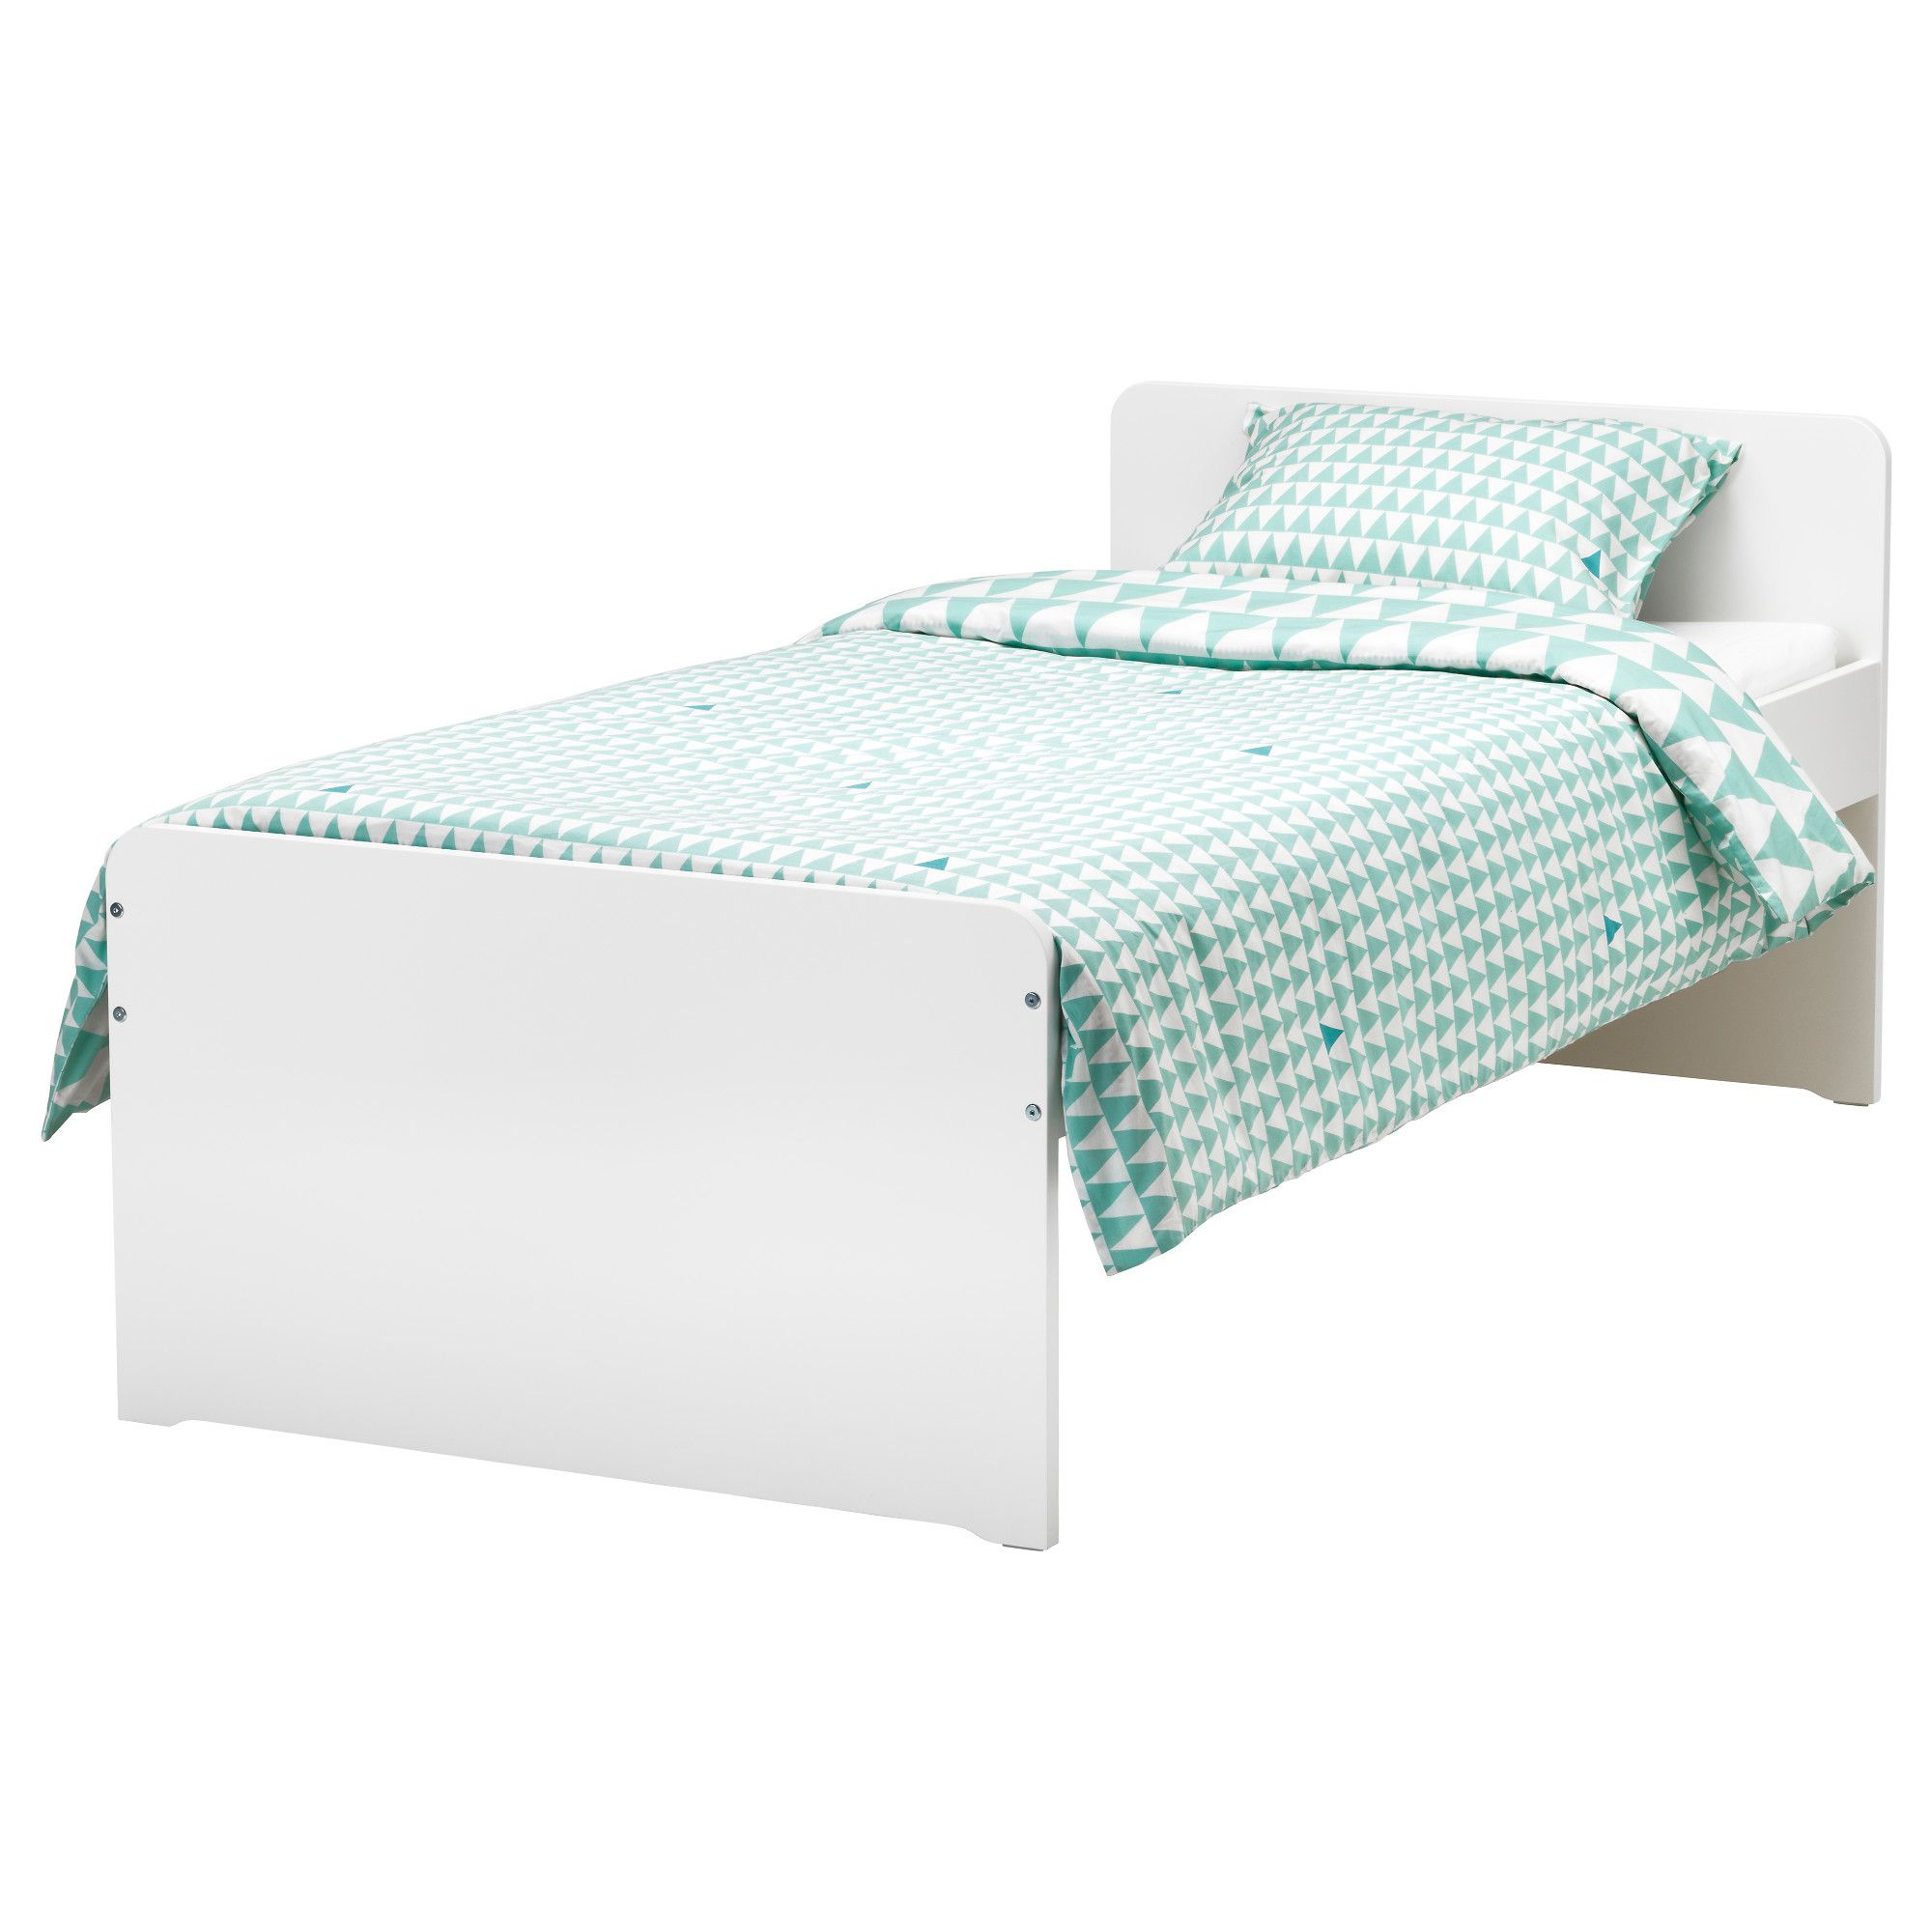 SLÄKT Bed frame with slatted bed base white Twin (With